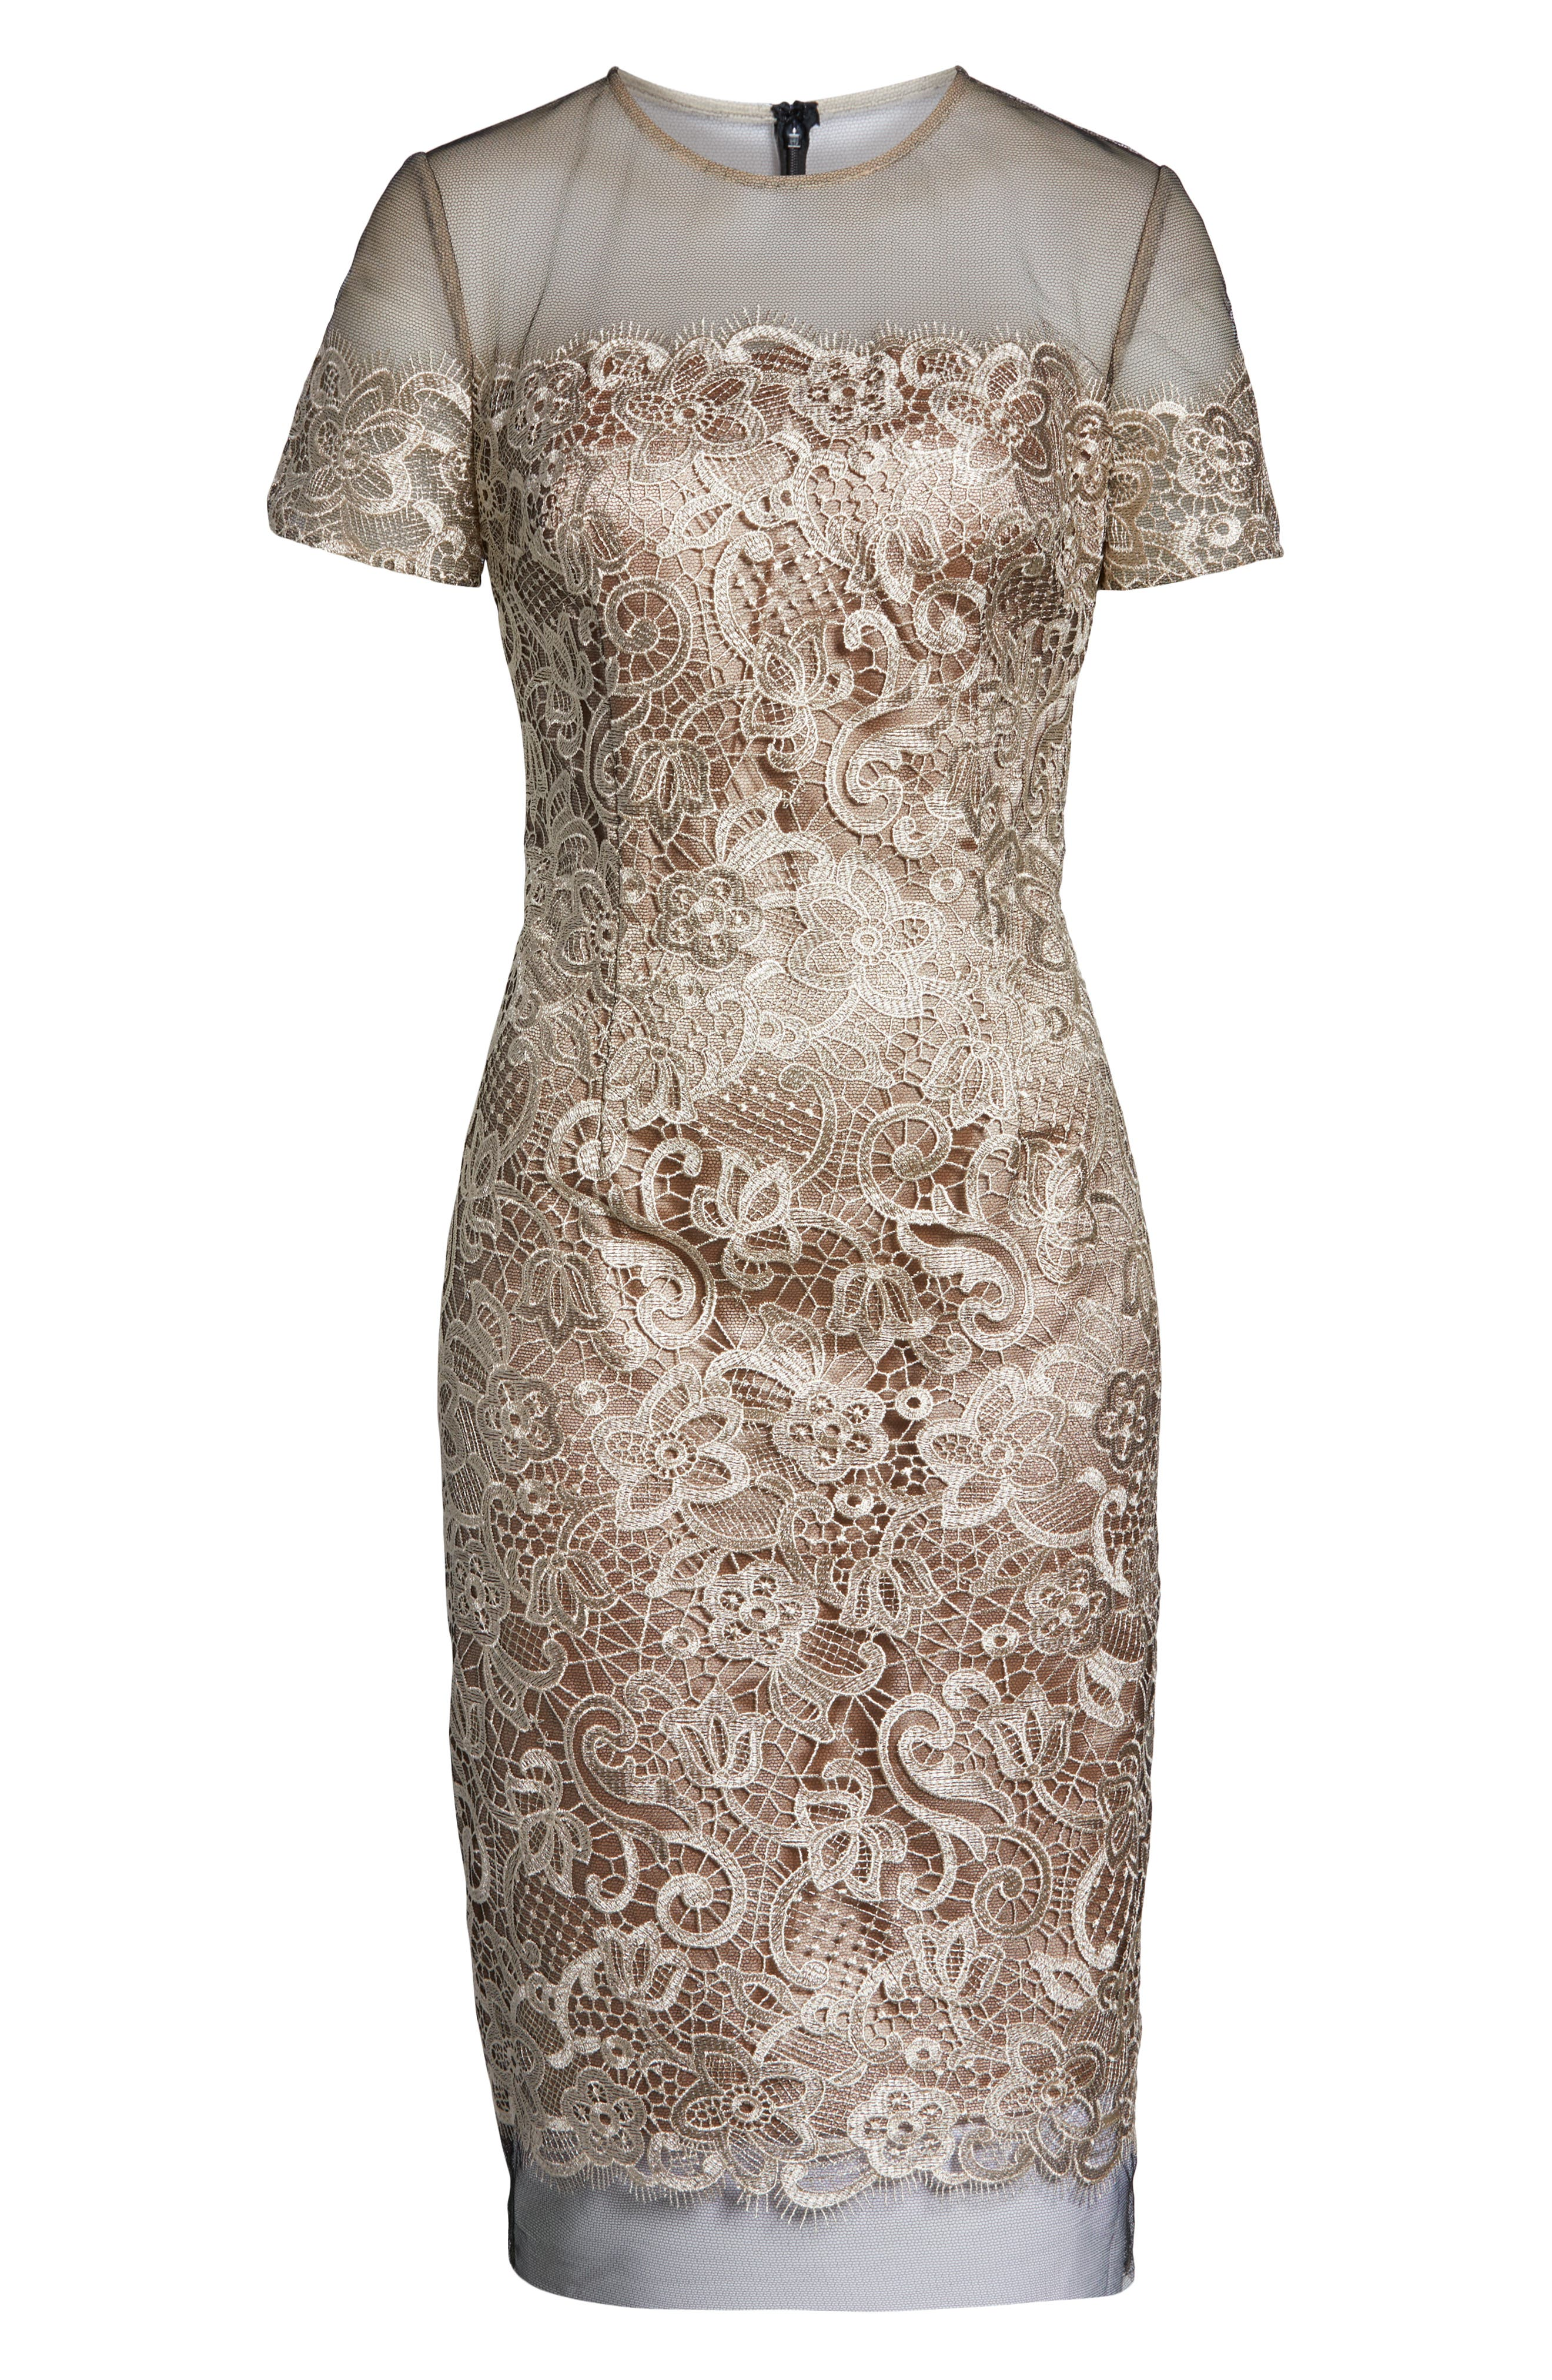 JS COLLECTIONS,                             Embroidered Lace Sheath Dress,                             Alternate thumbnail 6, color,                             BLACK/ OYSTER